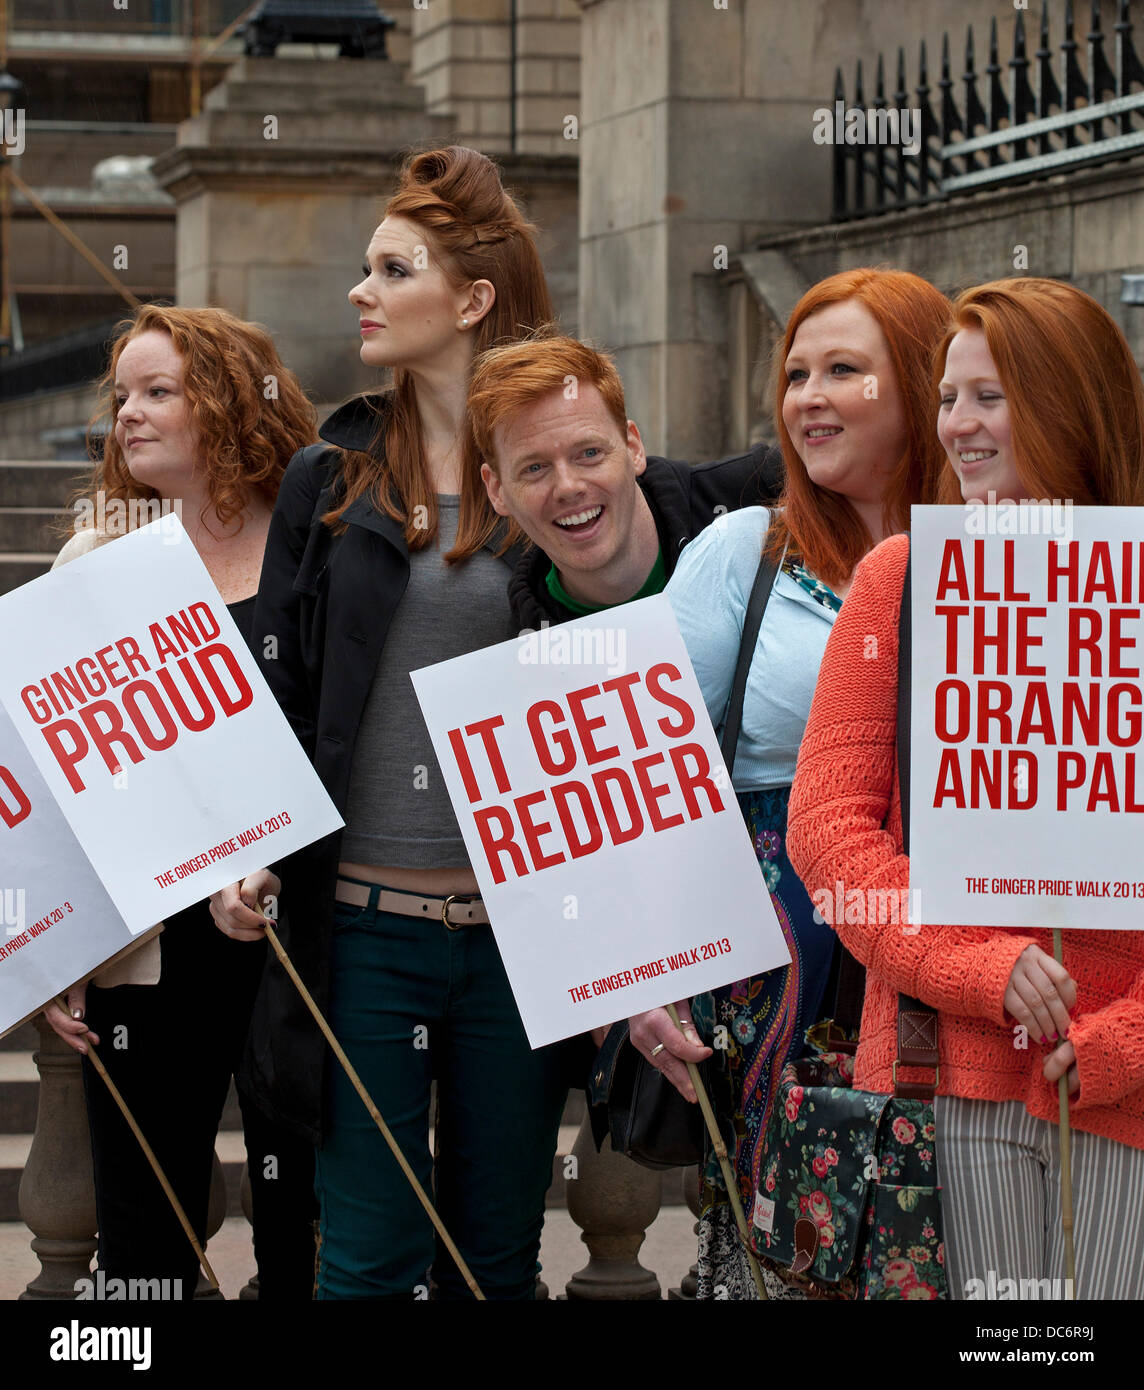 Edinburgh,UK. 10th August 2013. A red-haired comedian leads a march across Edinburgh in the name of Ginger pride. - Stock Image